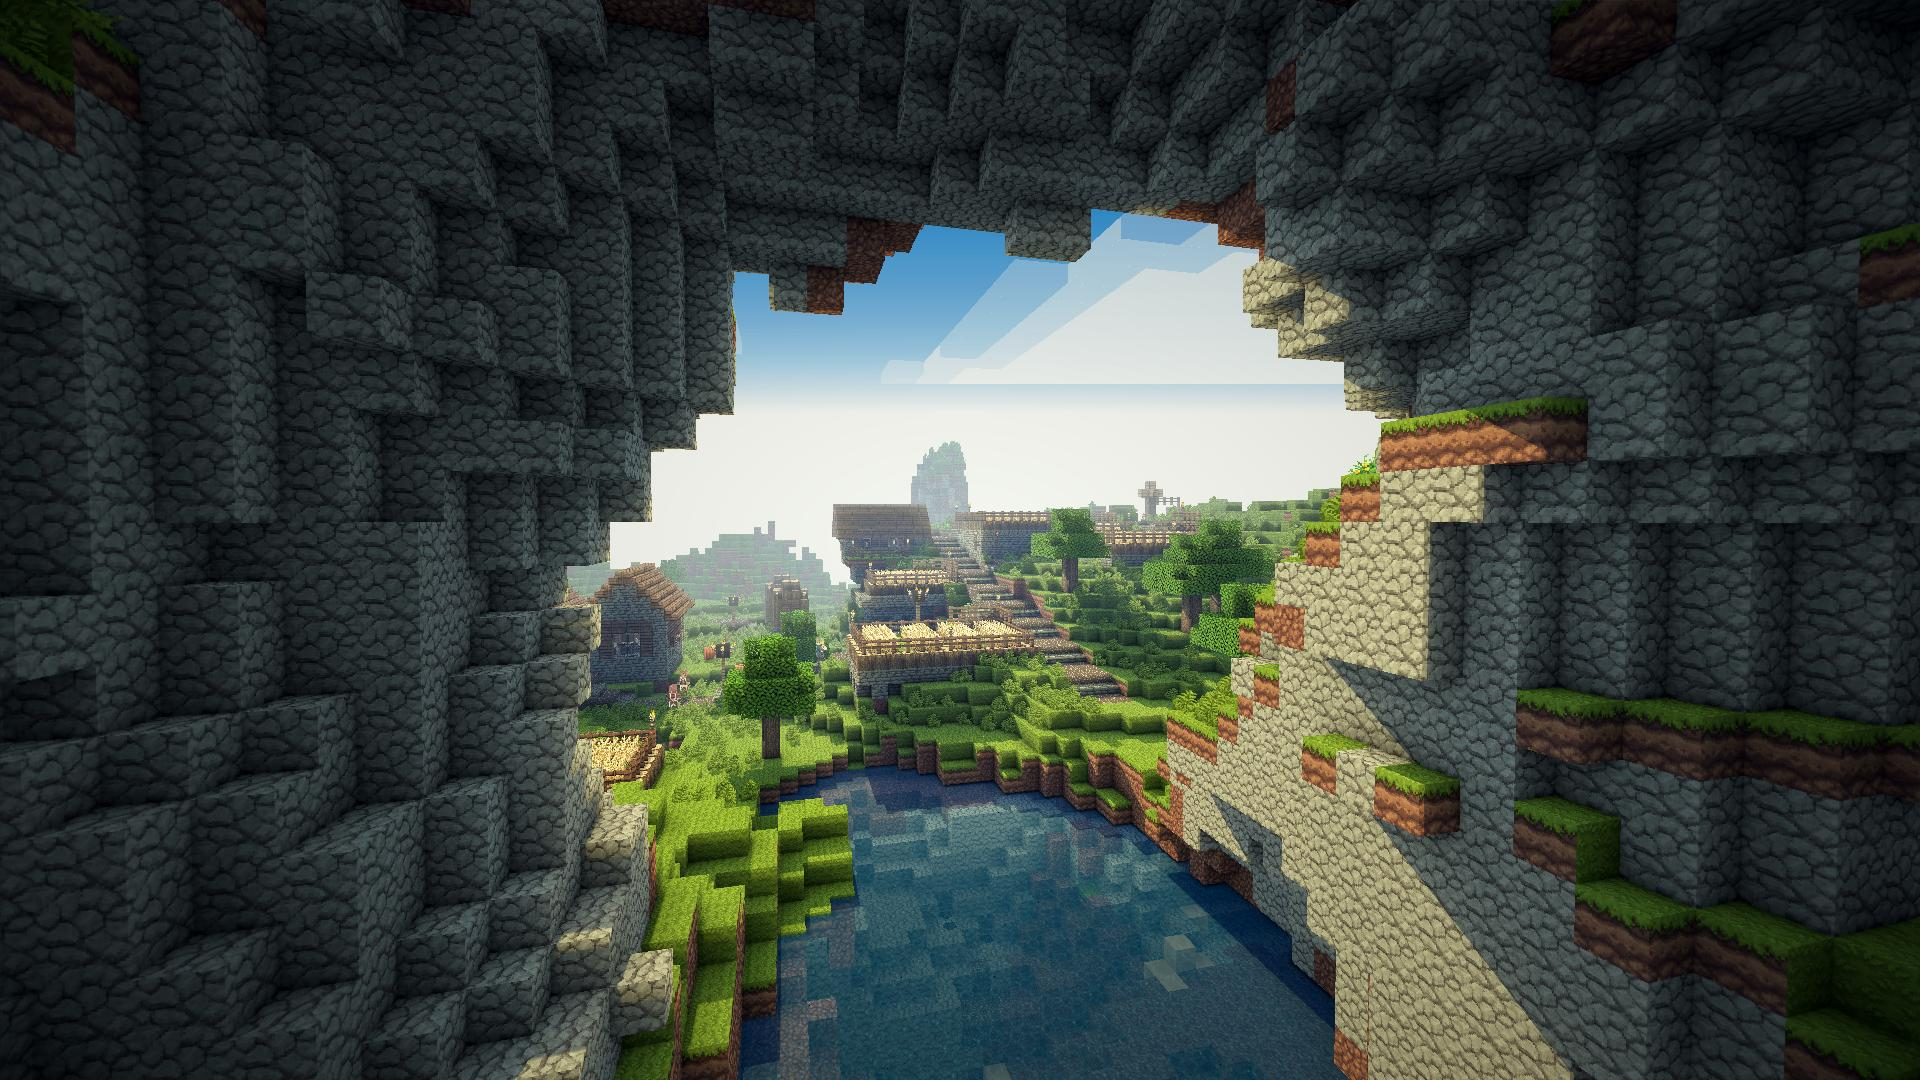 Minecraft Res: 1920x1080 HD / Size:327kb. Views: 685858